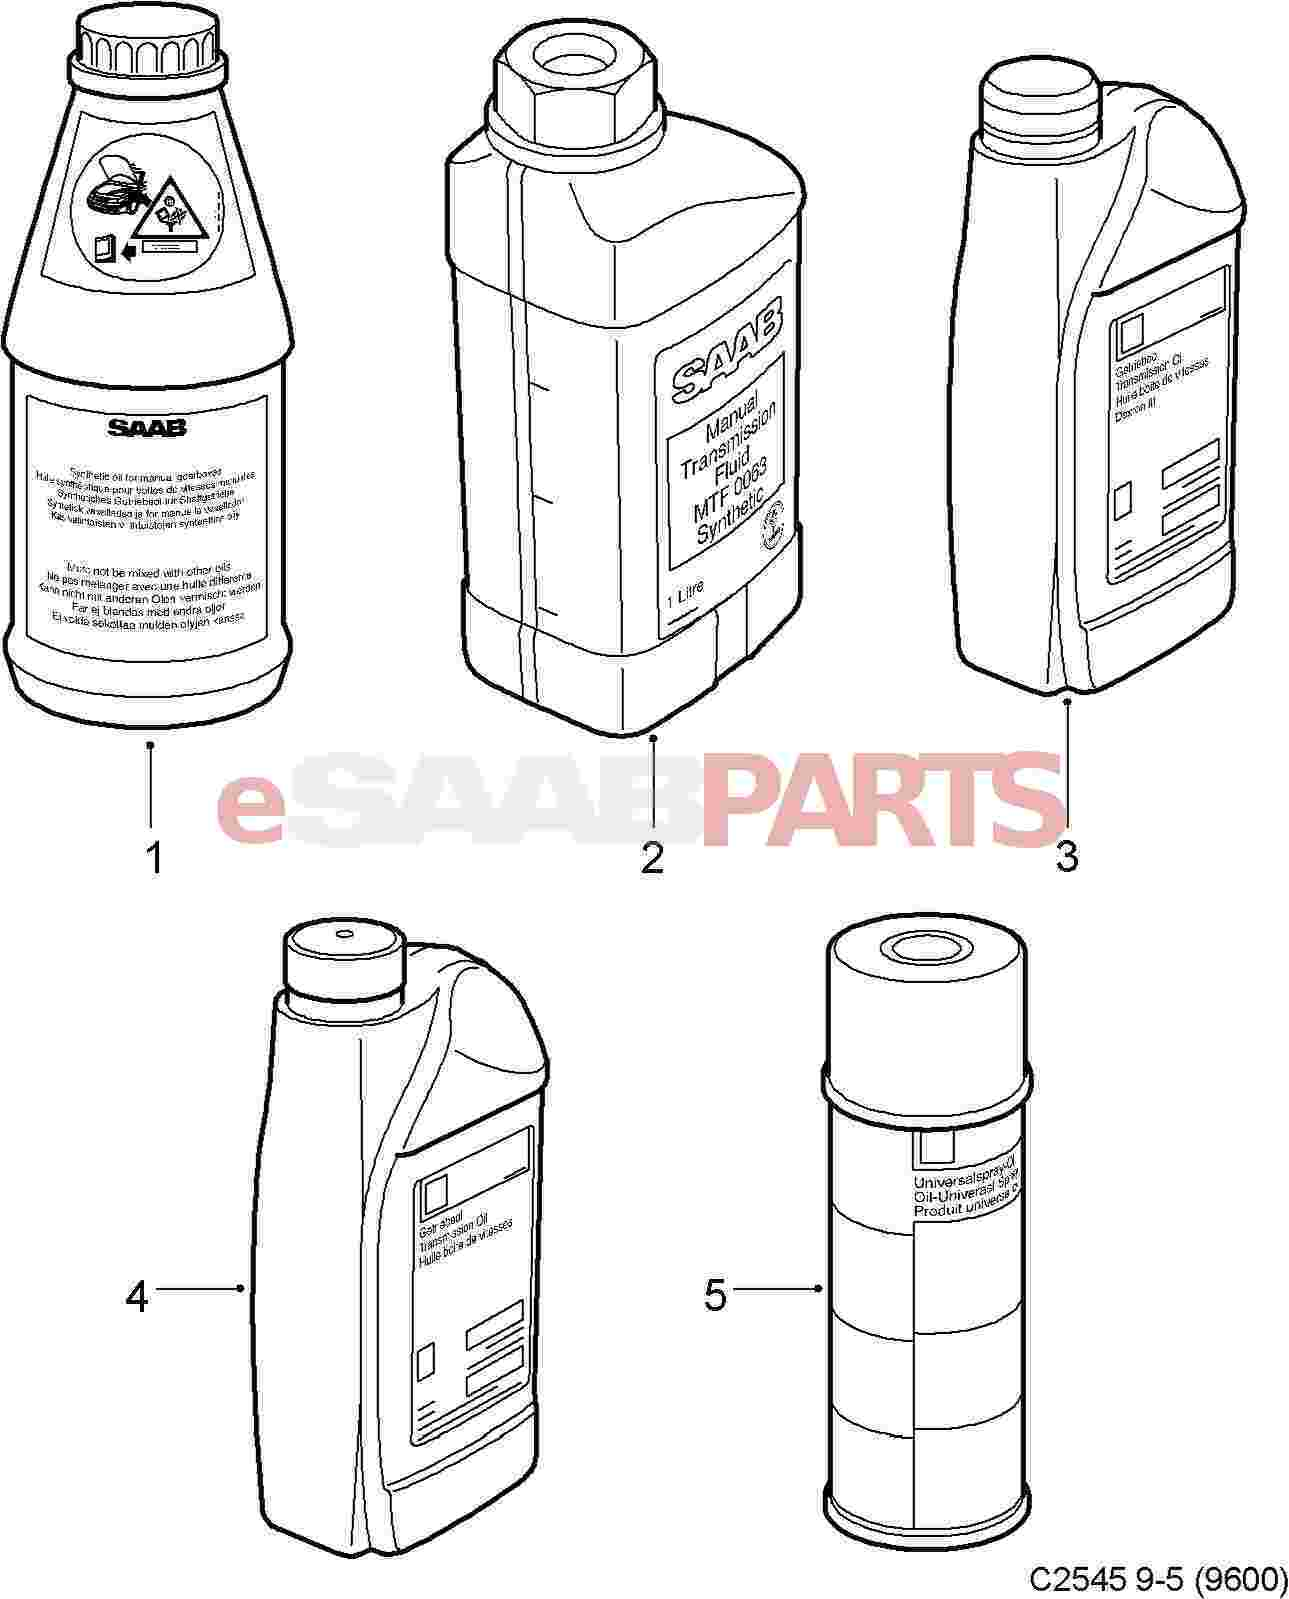 [93160393] SAAB Automatic Transmission Fluid (5-Speed